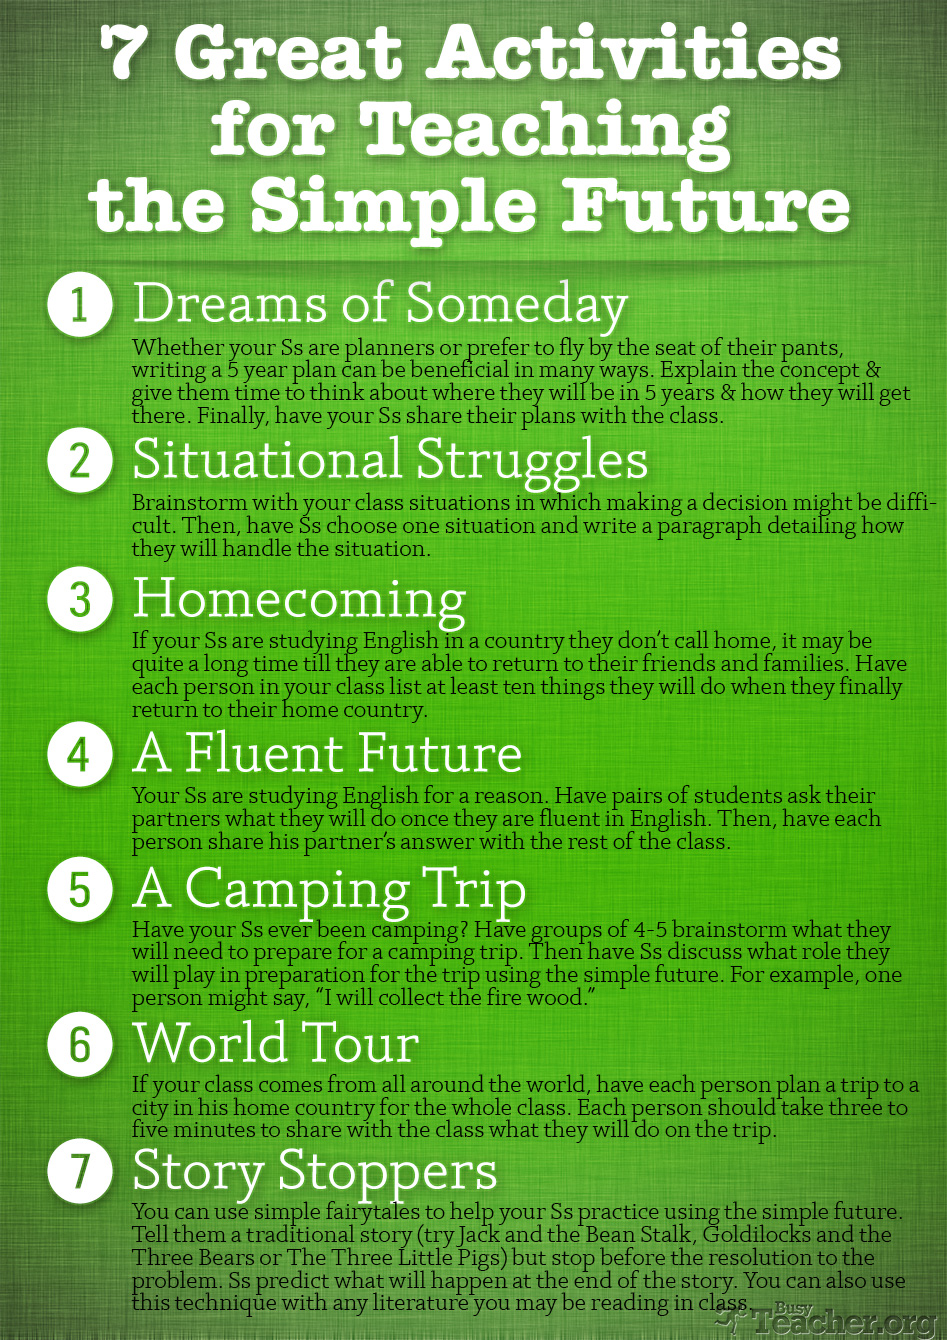 POSTER: 7 Great Activities to Teach the Simple Future